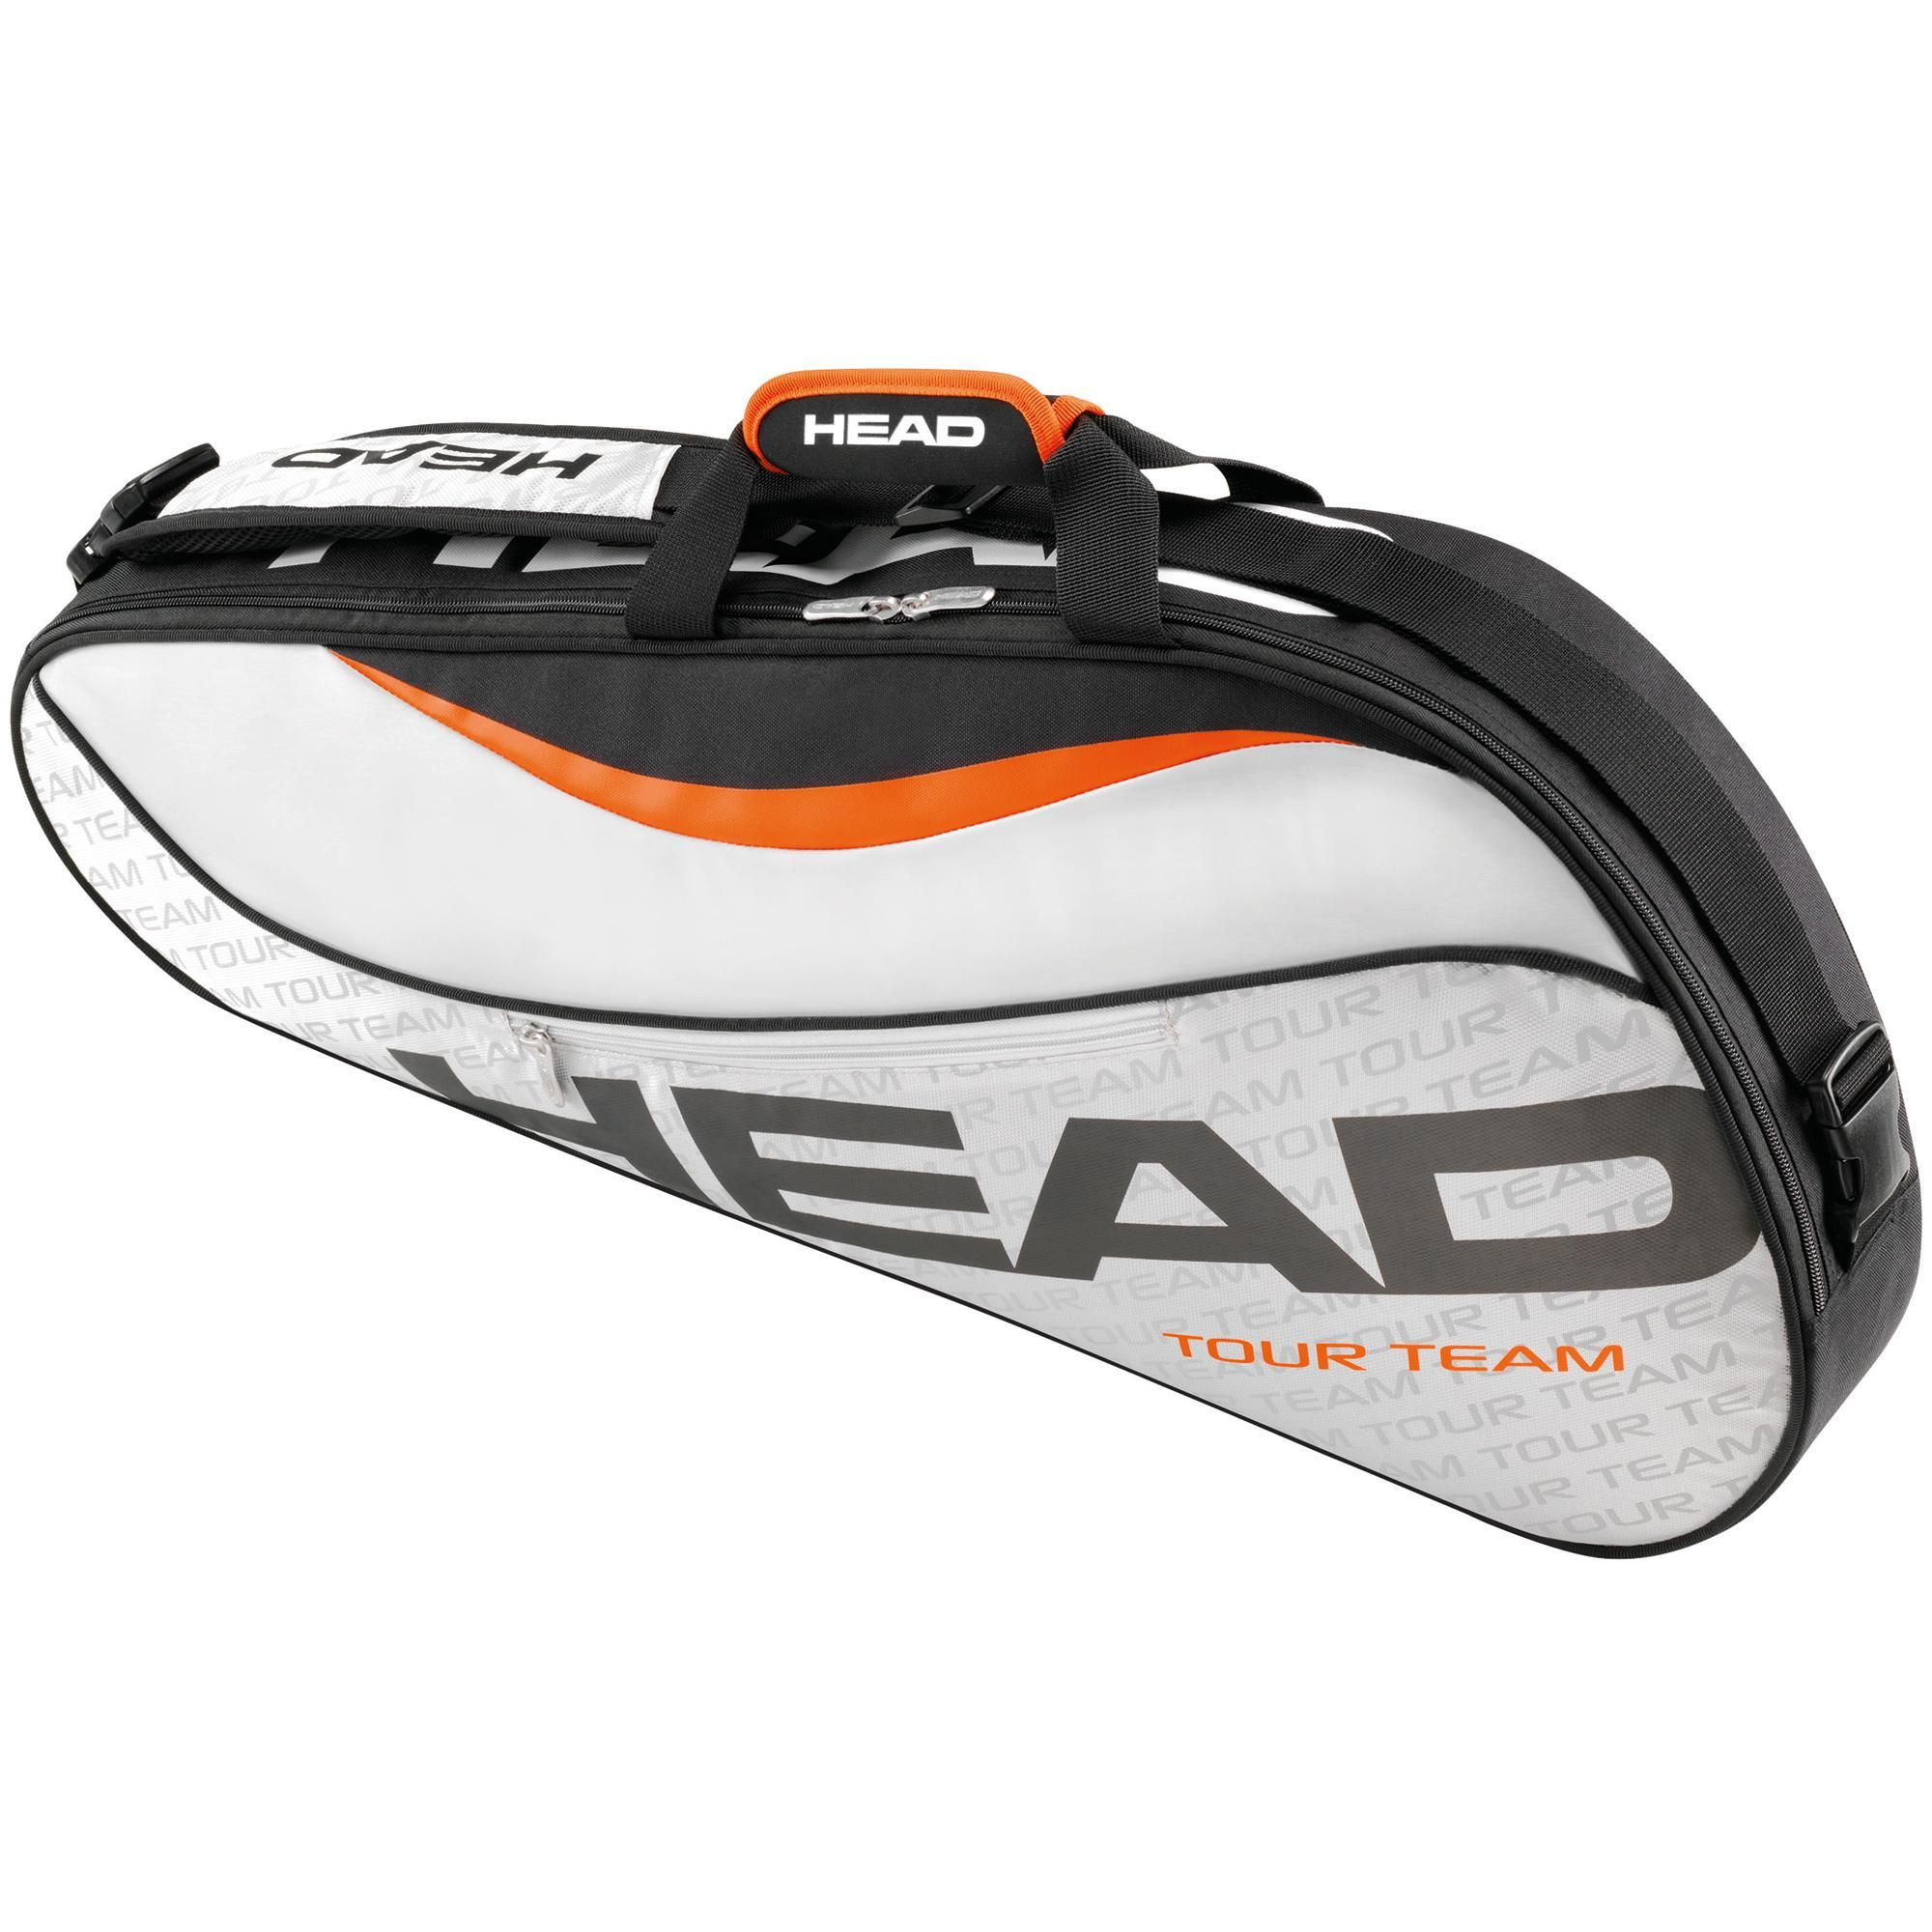 Finding The Comfortable Tennis Racquet Bag In 2020 Tennis Bag Tennis Bags Pro Tennis